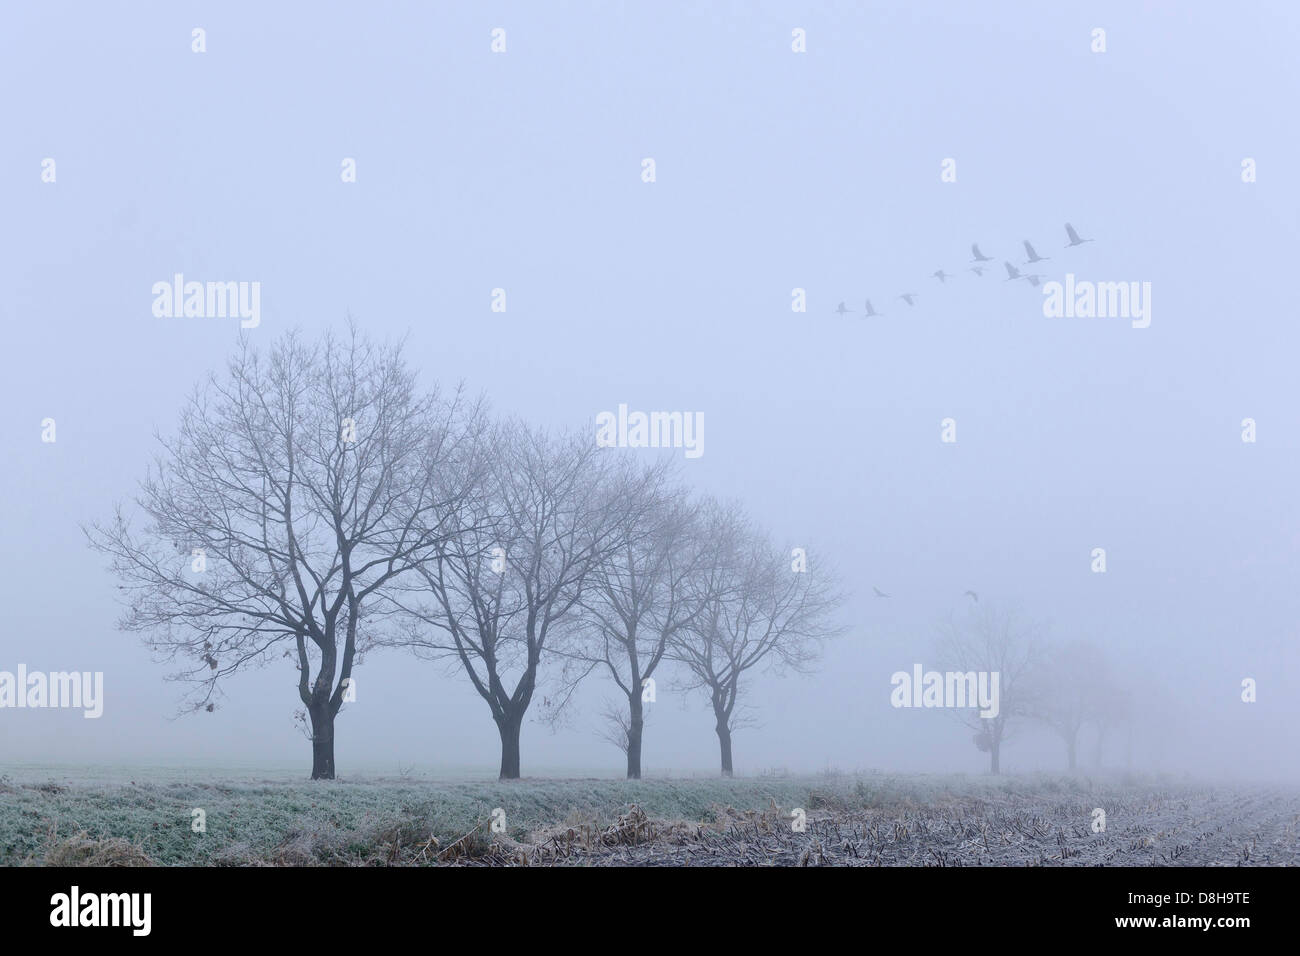 cranes on a november morning, goldenstedter moor, lower saxony, germany - Stock Image